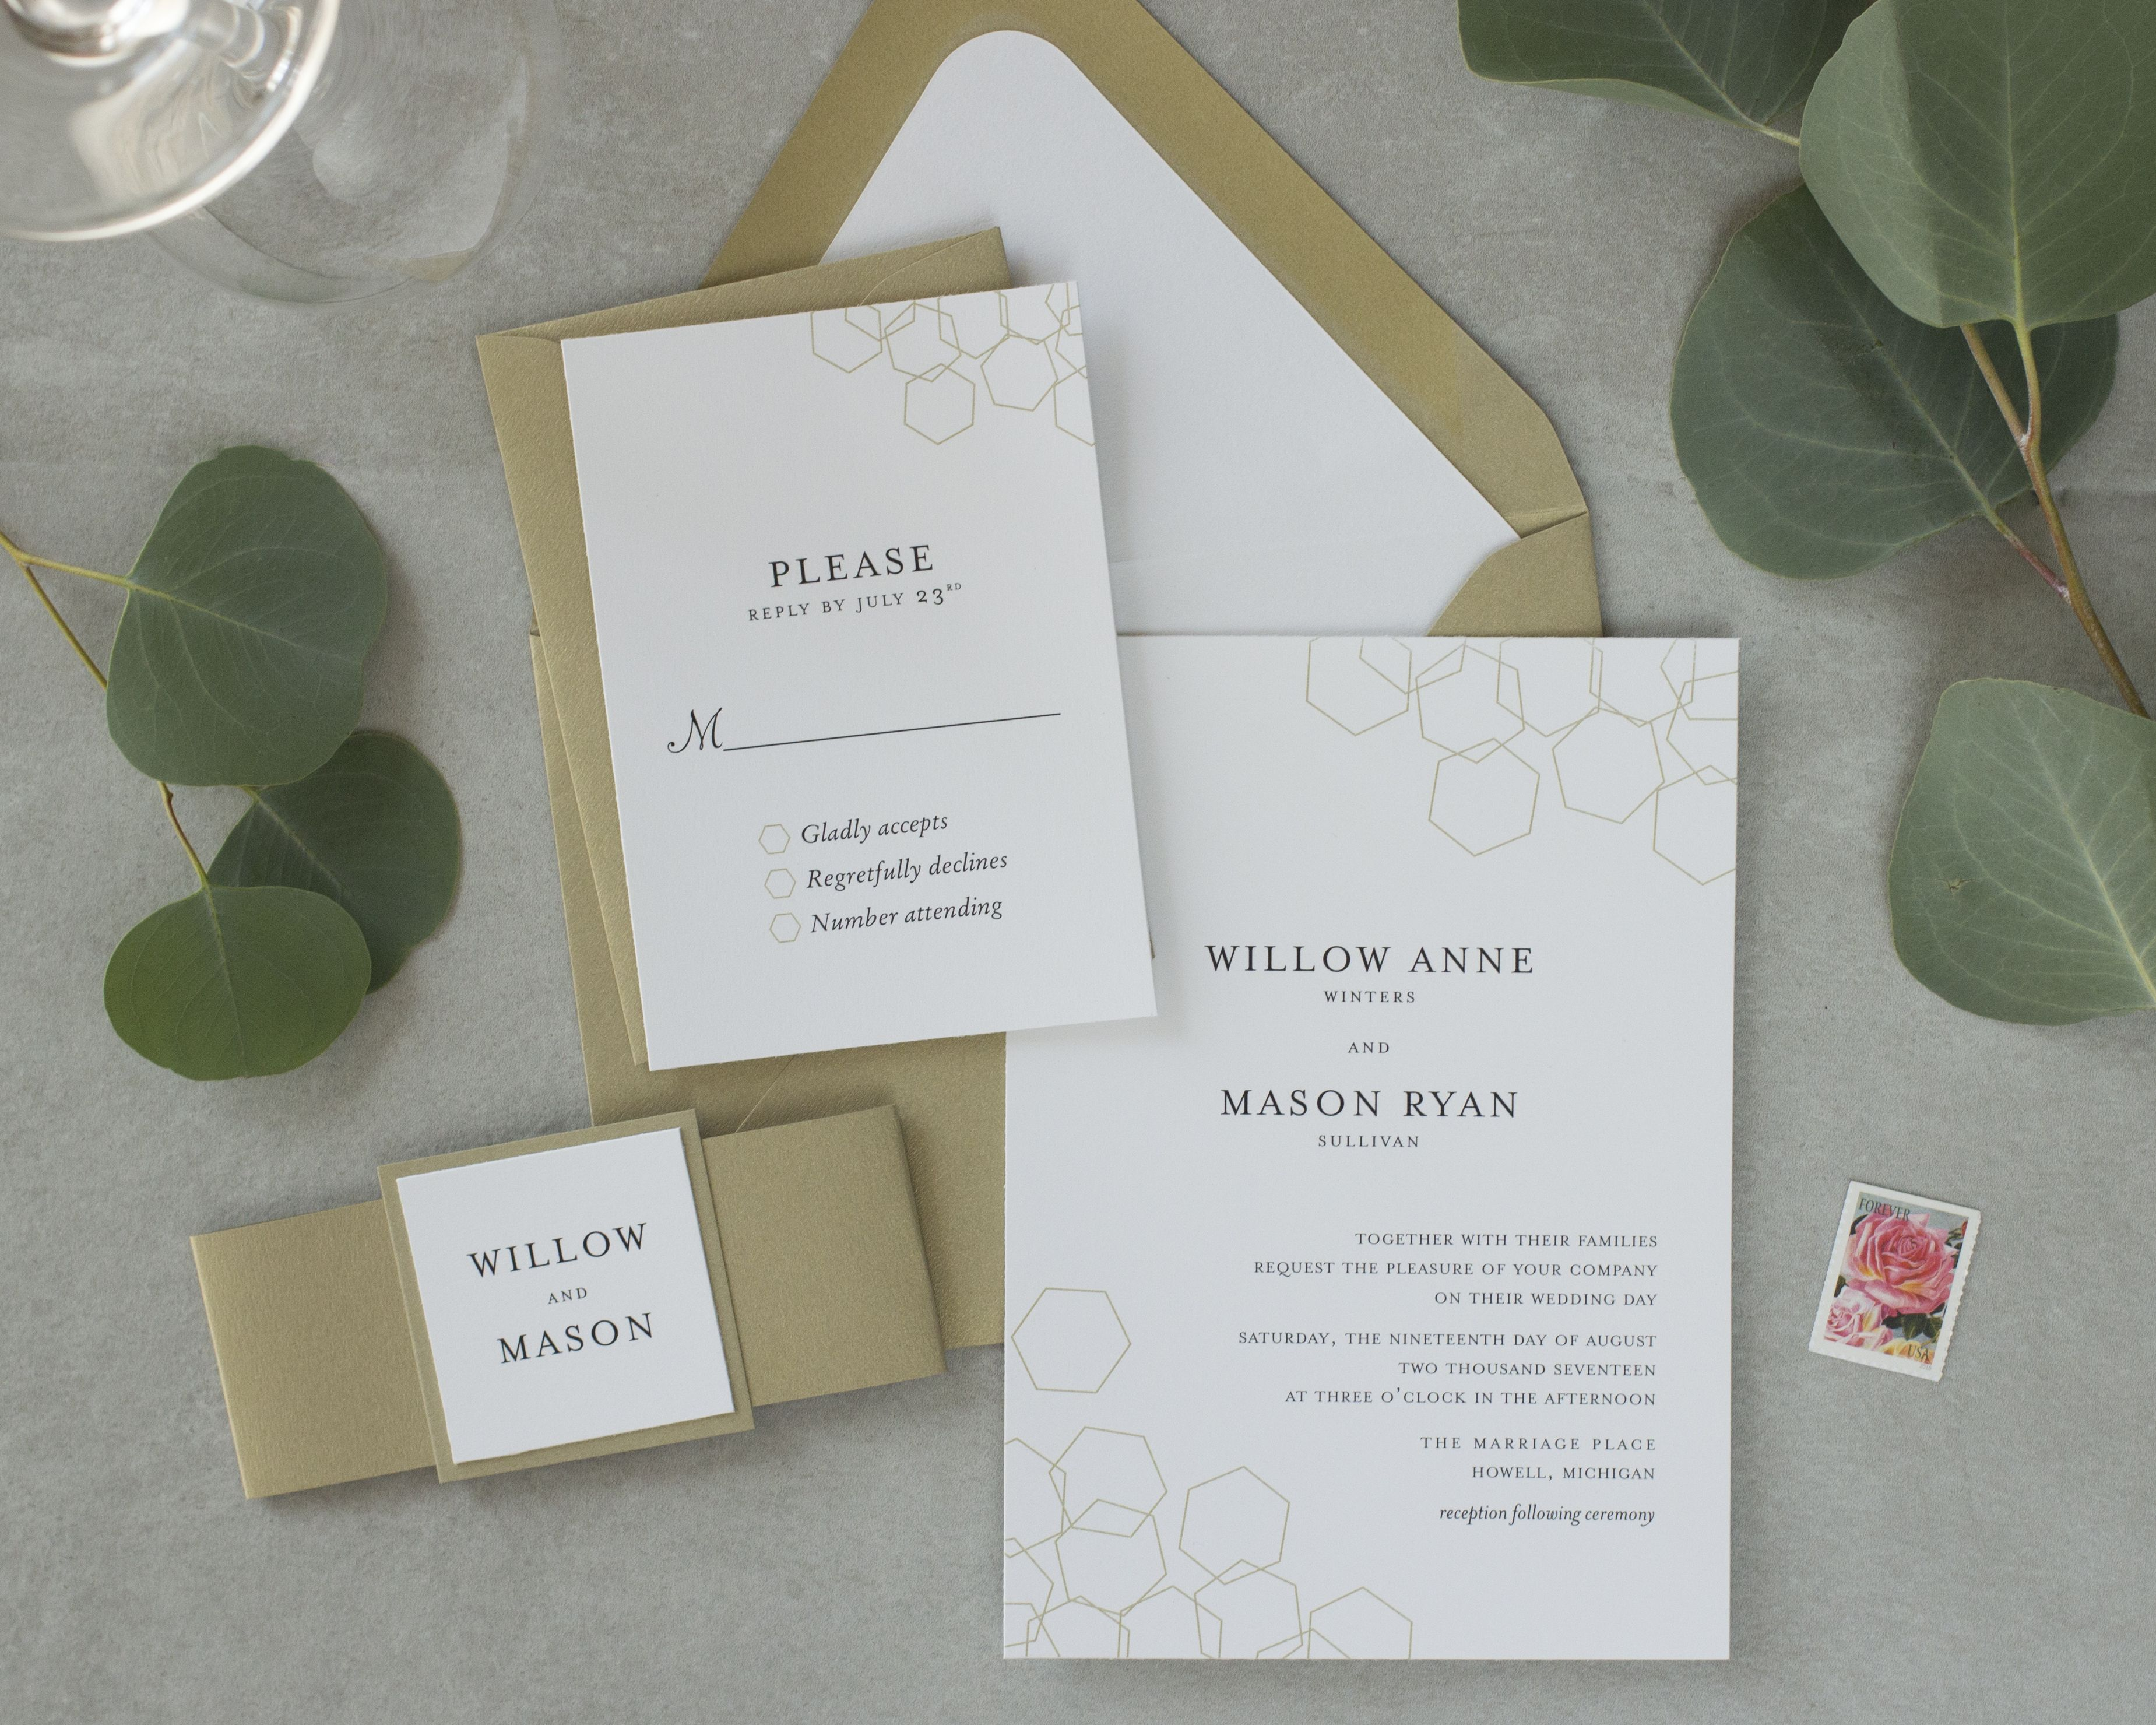 champagne blush wedding invitations%0A Nontraditional wedding invitation with a honeycomb design  A beautiful   contemporary invitation with